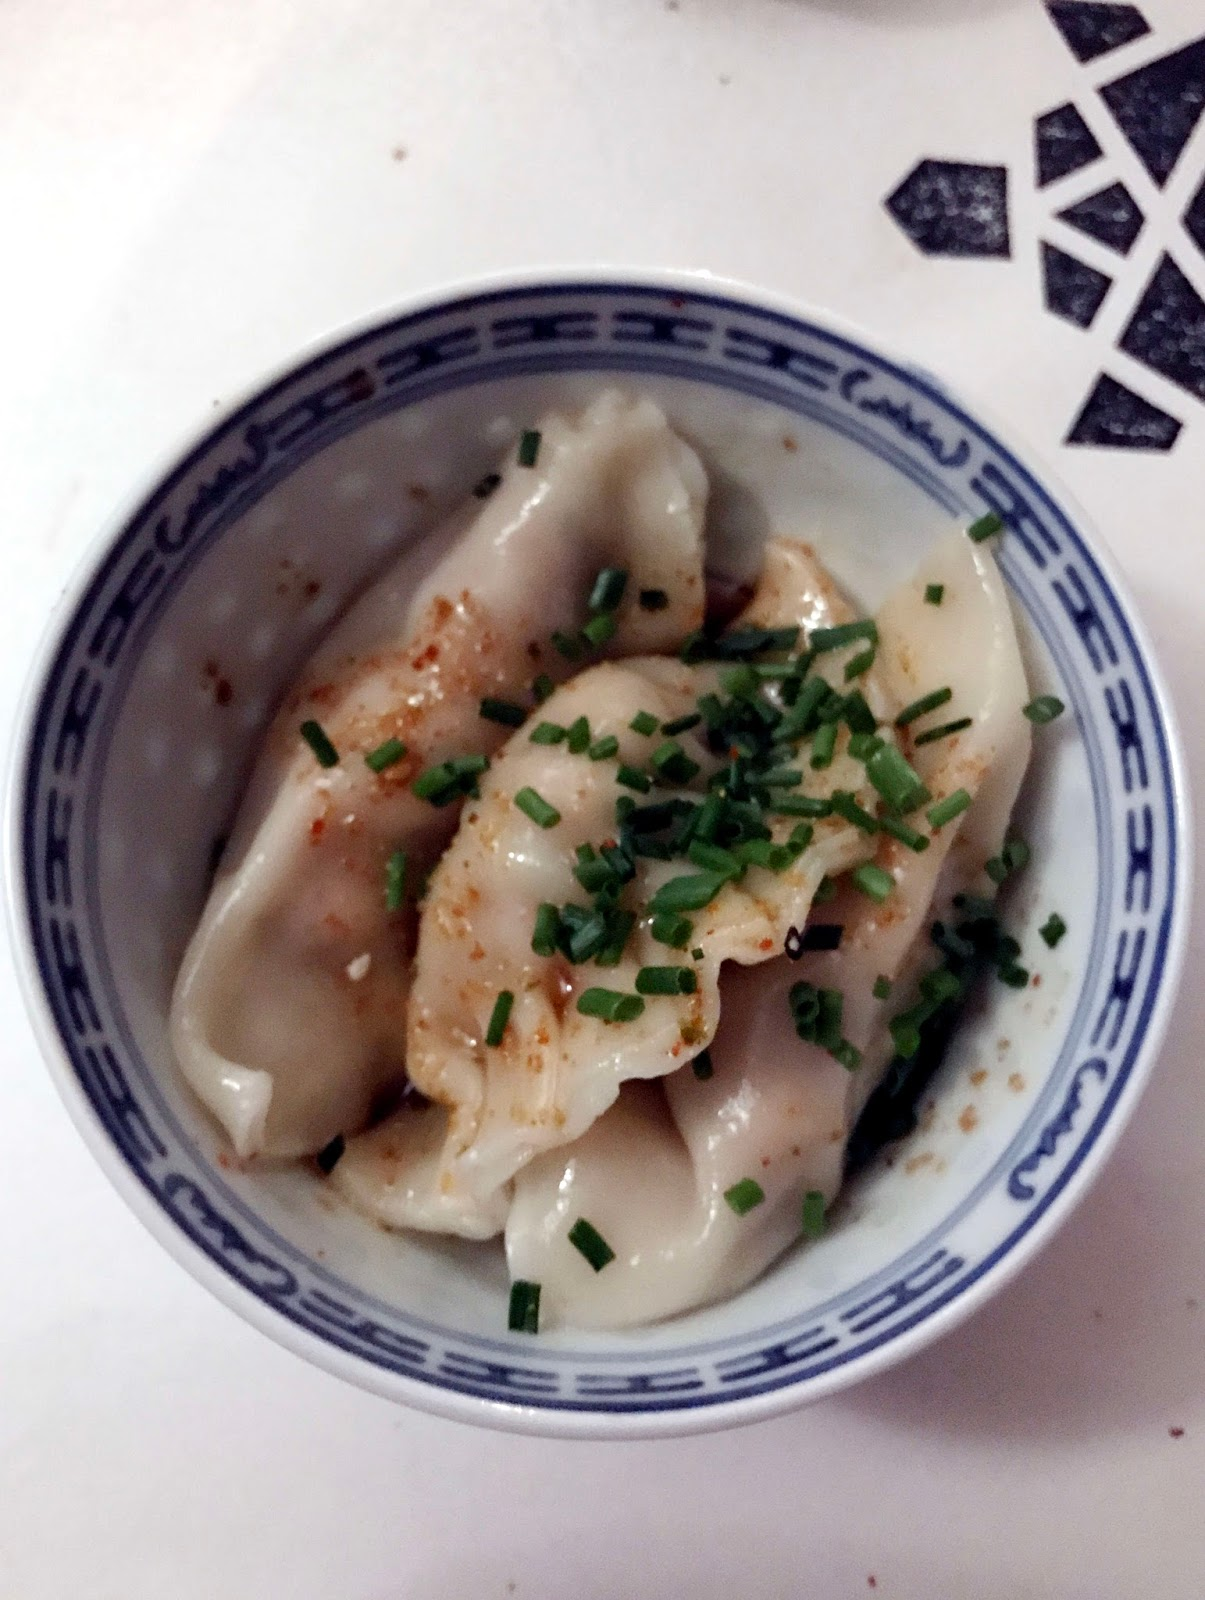 Stitch & Bear - Pork and chive dumplings at The Lucky Tortoise